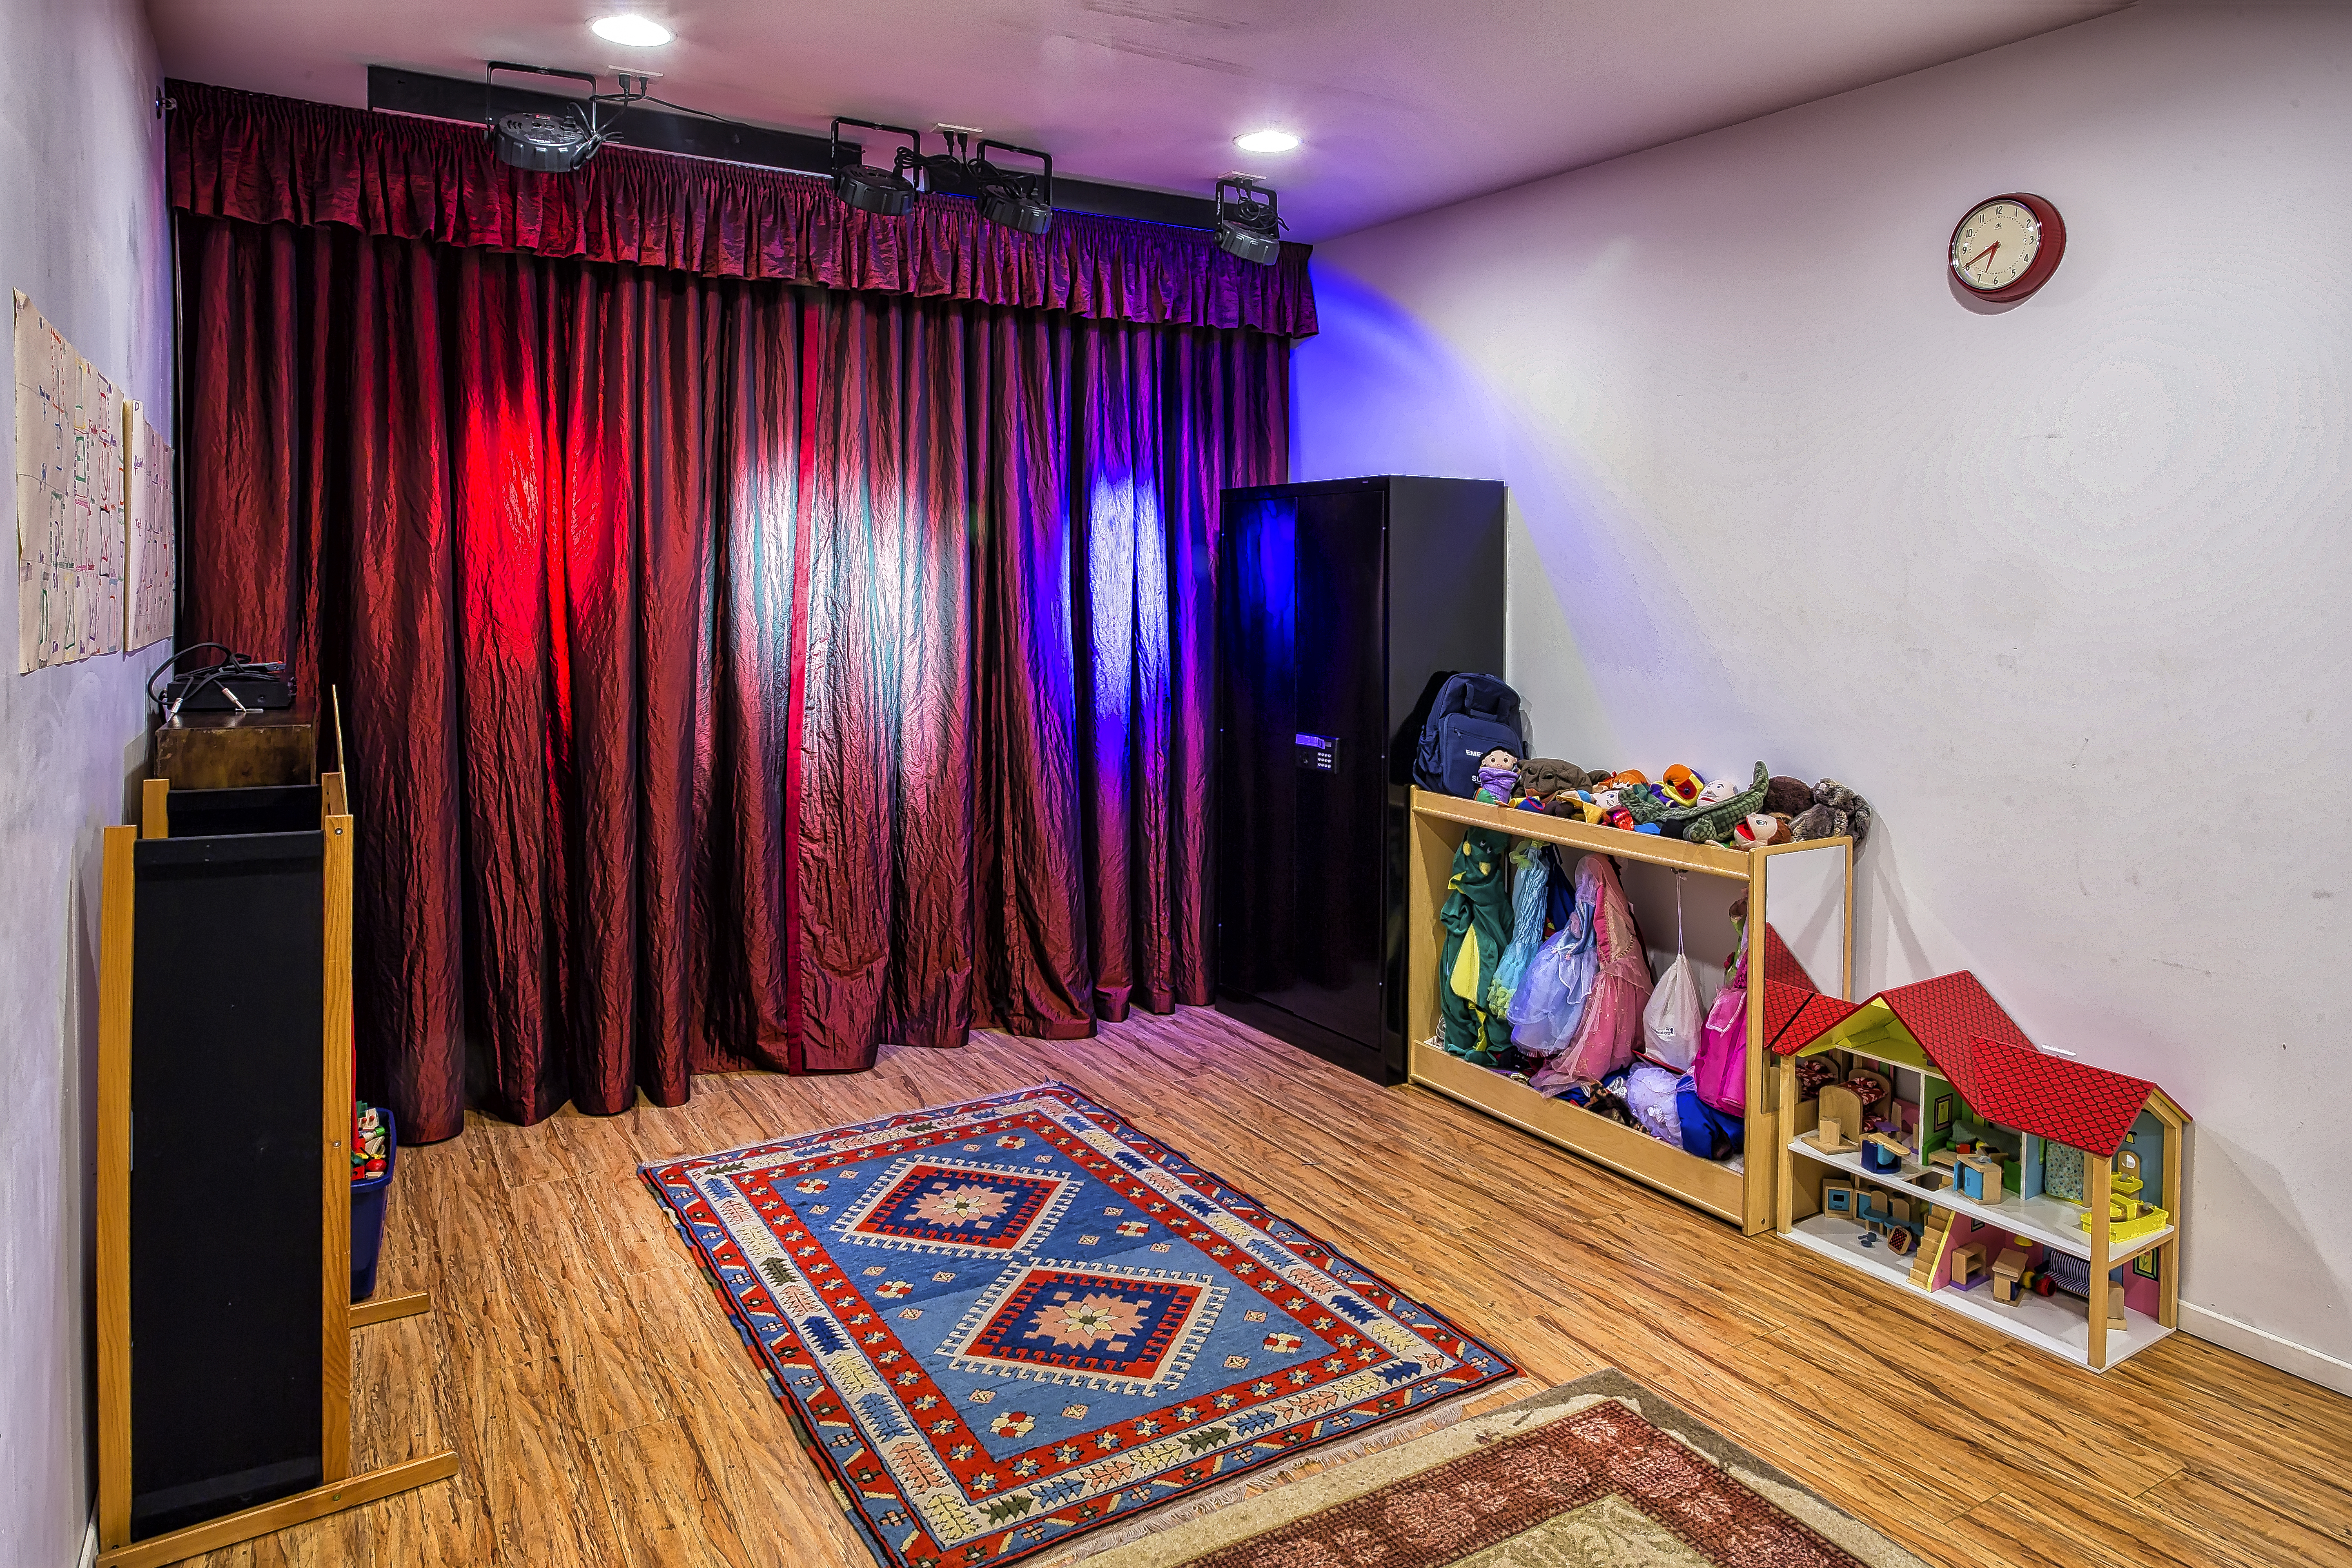 Children's Theater Room